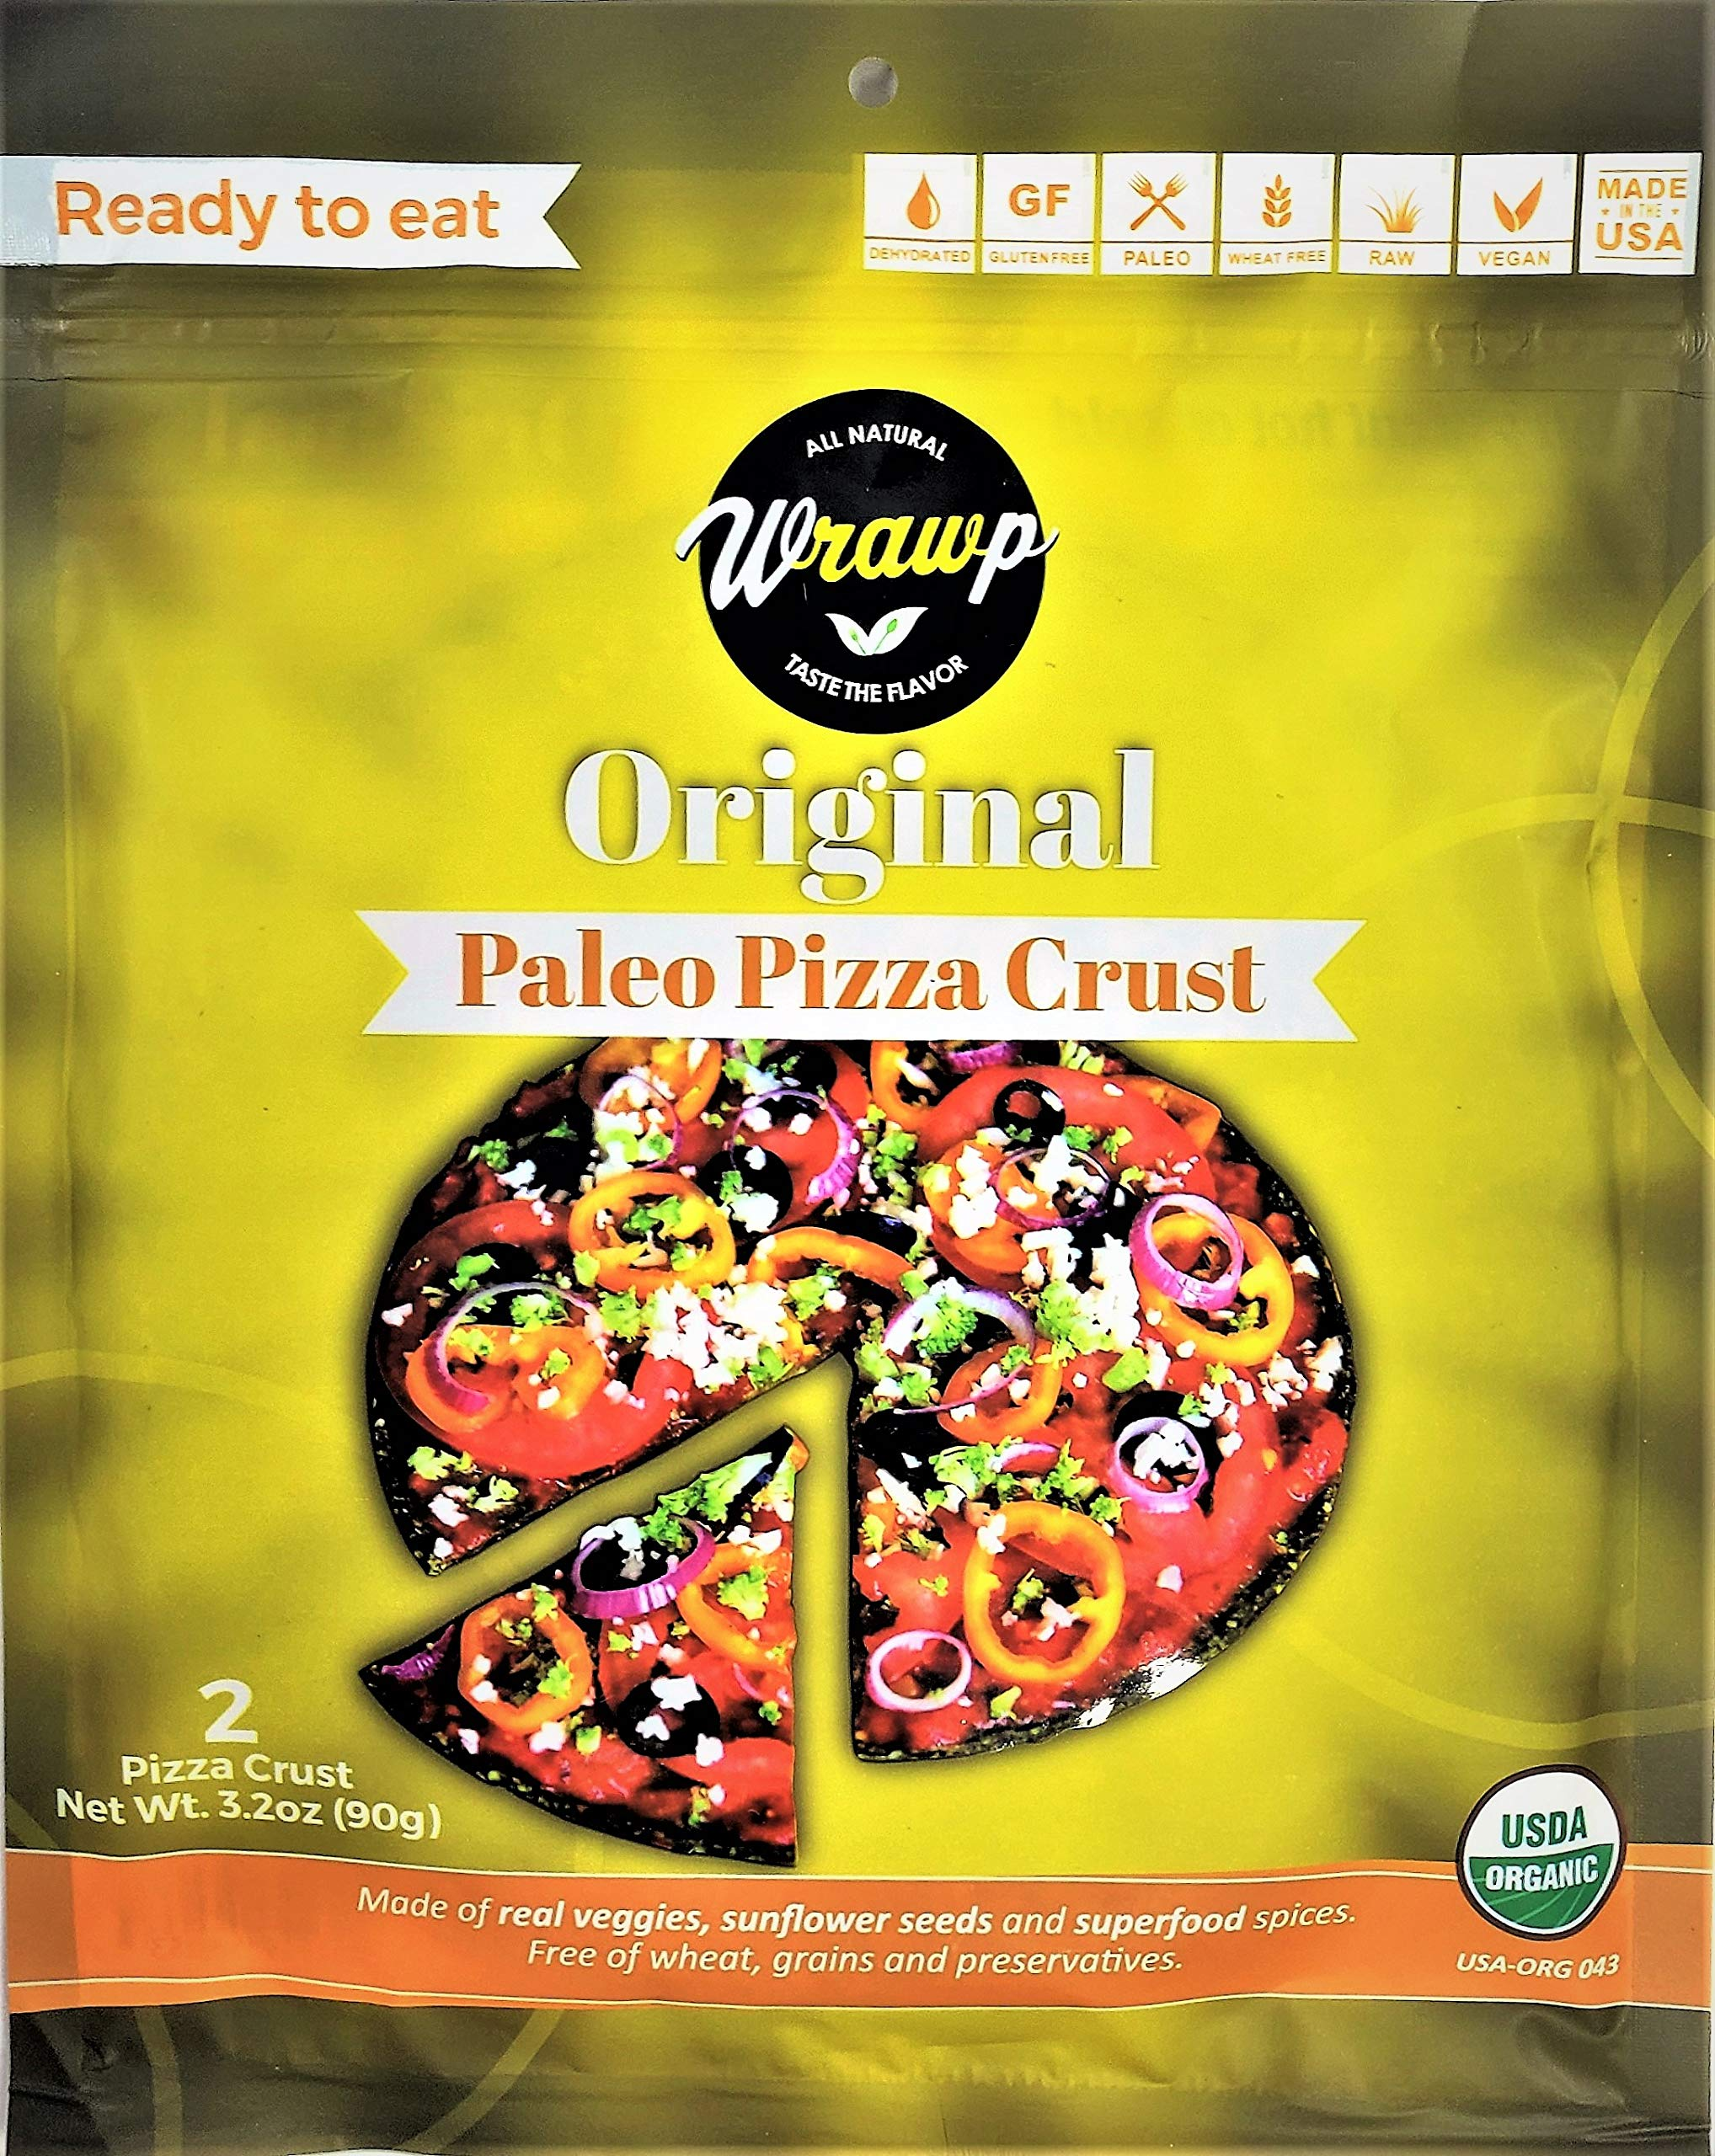 Paleo Pizza Crust | Original Flavored Organic Gluten Free, Dairy Free, Soy Free, Nut Free and Vegan Pizza Crust 6 Pack